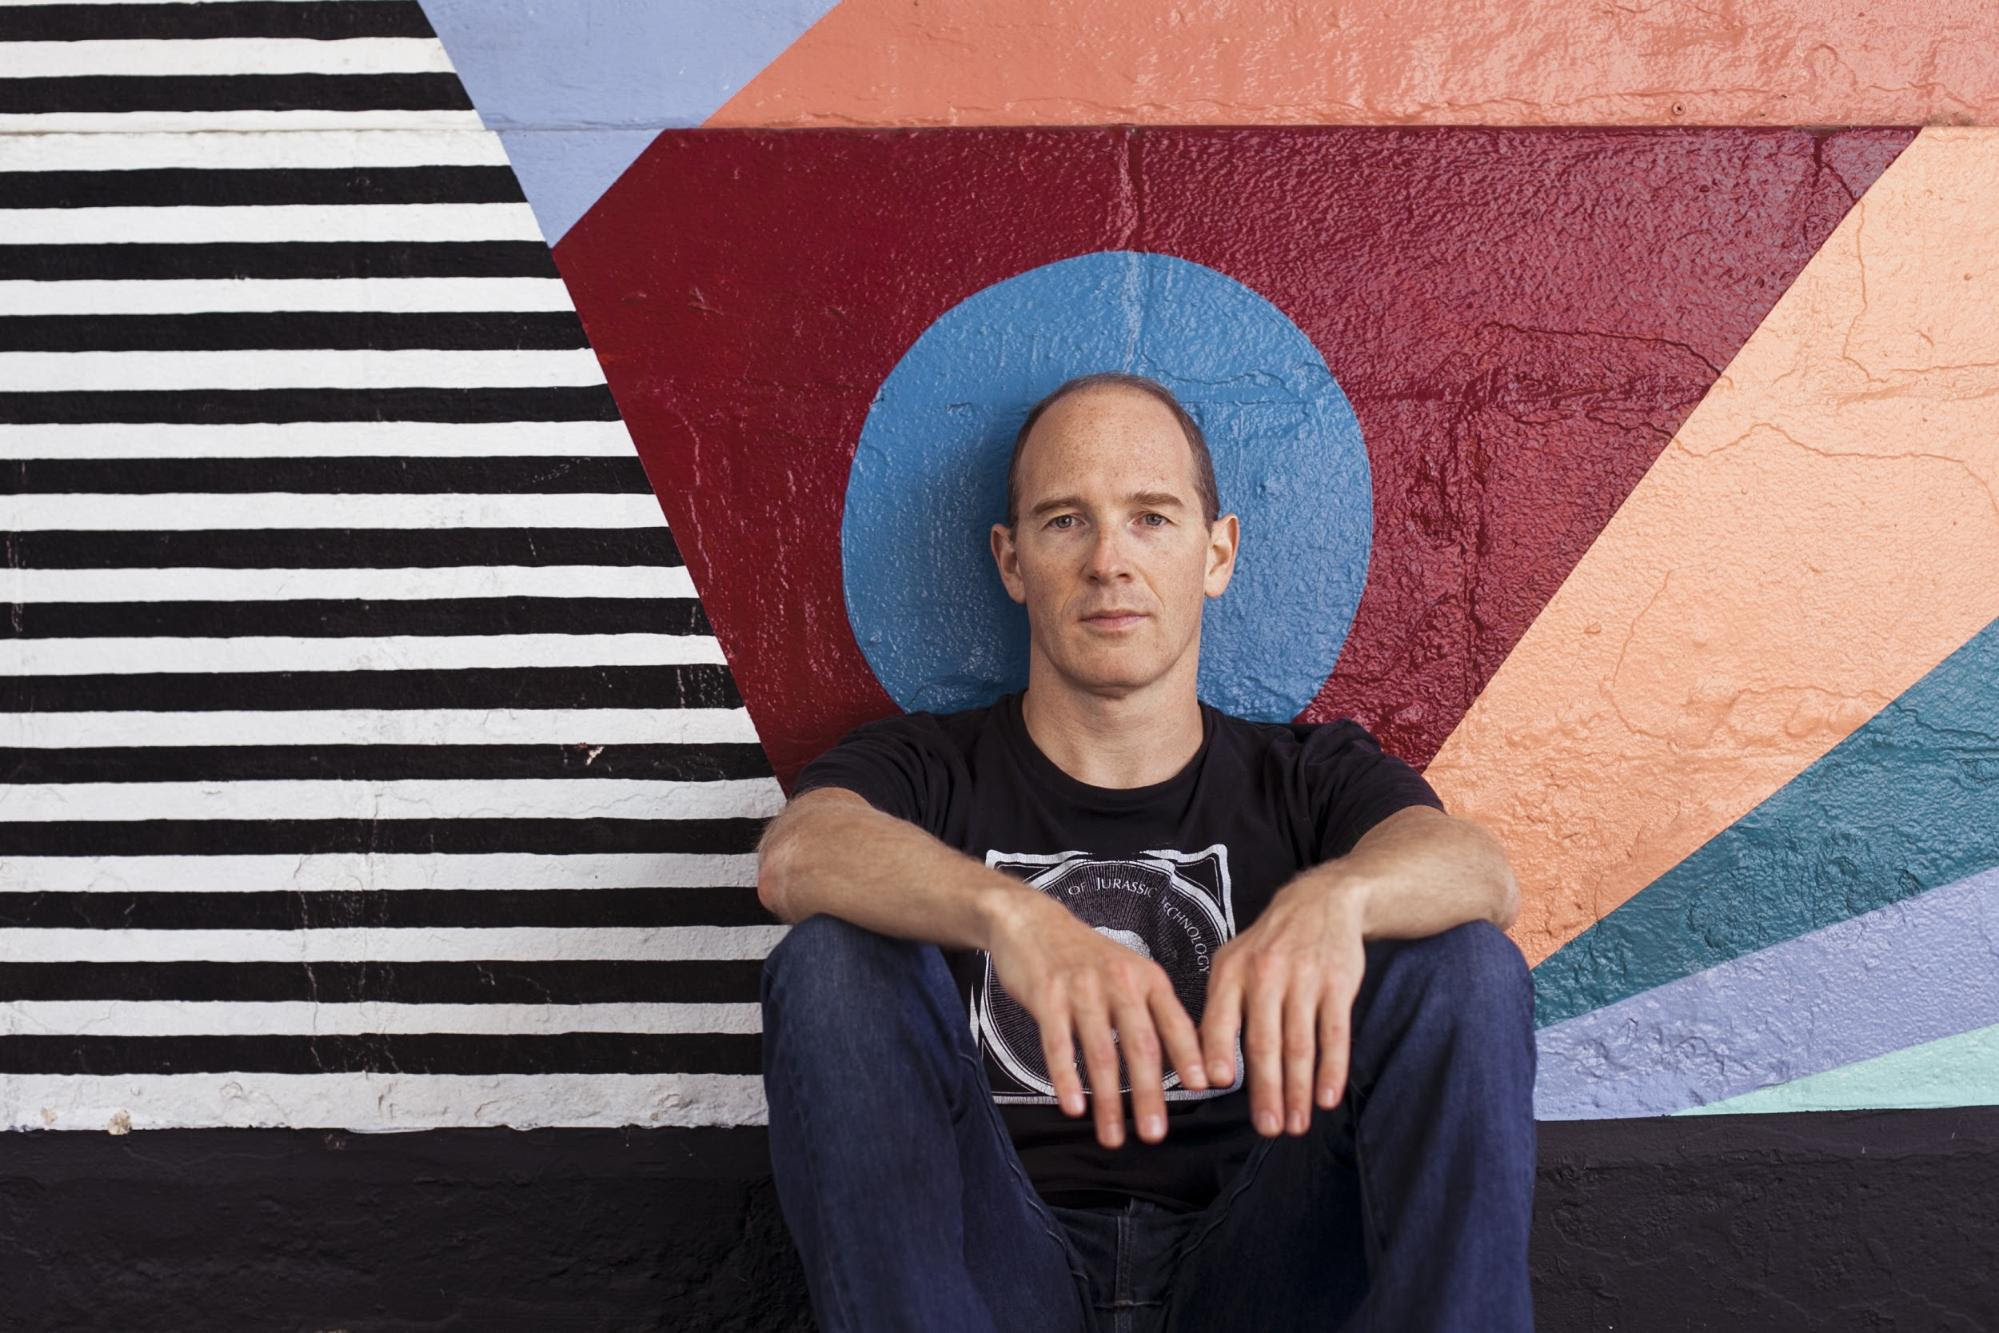 Dan Snaith aka Caribou today shares a new track 'Home'. The track comes as his first new music in five years since the release of Our Love.